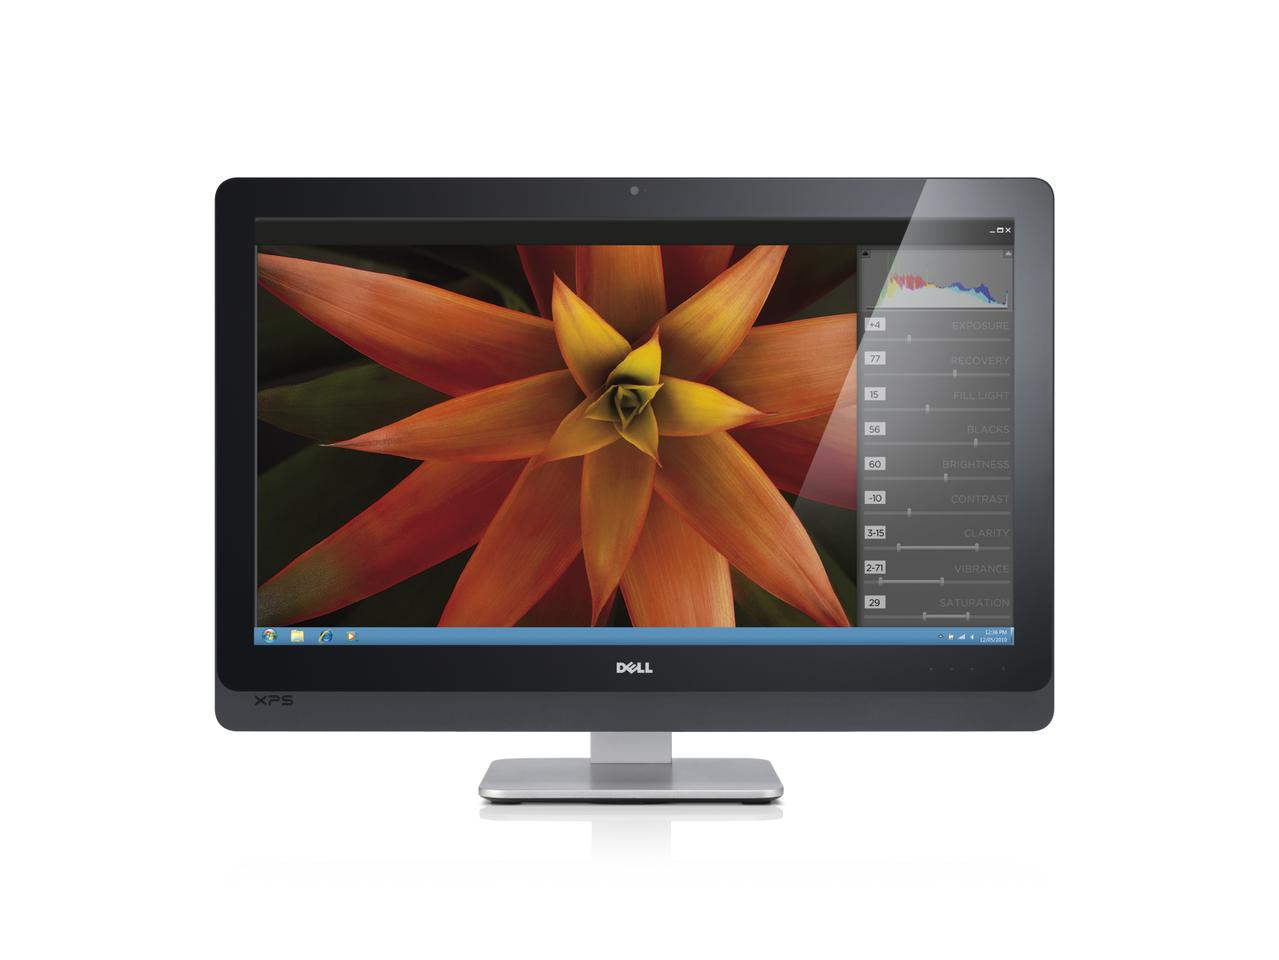 Dell has added a new member to its premium XPS family, the XPS One 27 is the company's largest all-in-one desktop computer to date and features a Full Quad HD (2560 x 1440 resolution) WLED display